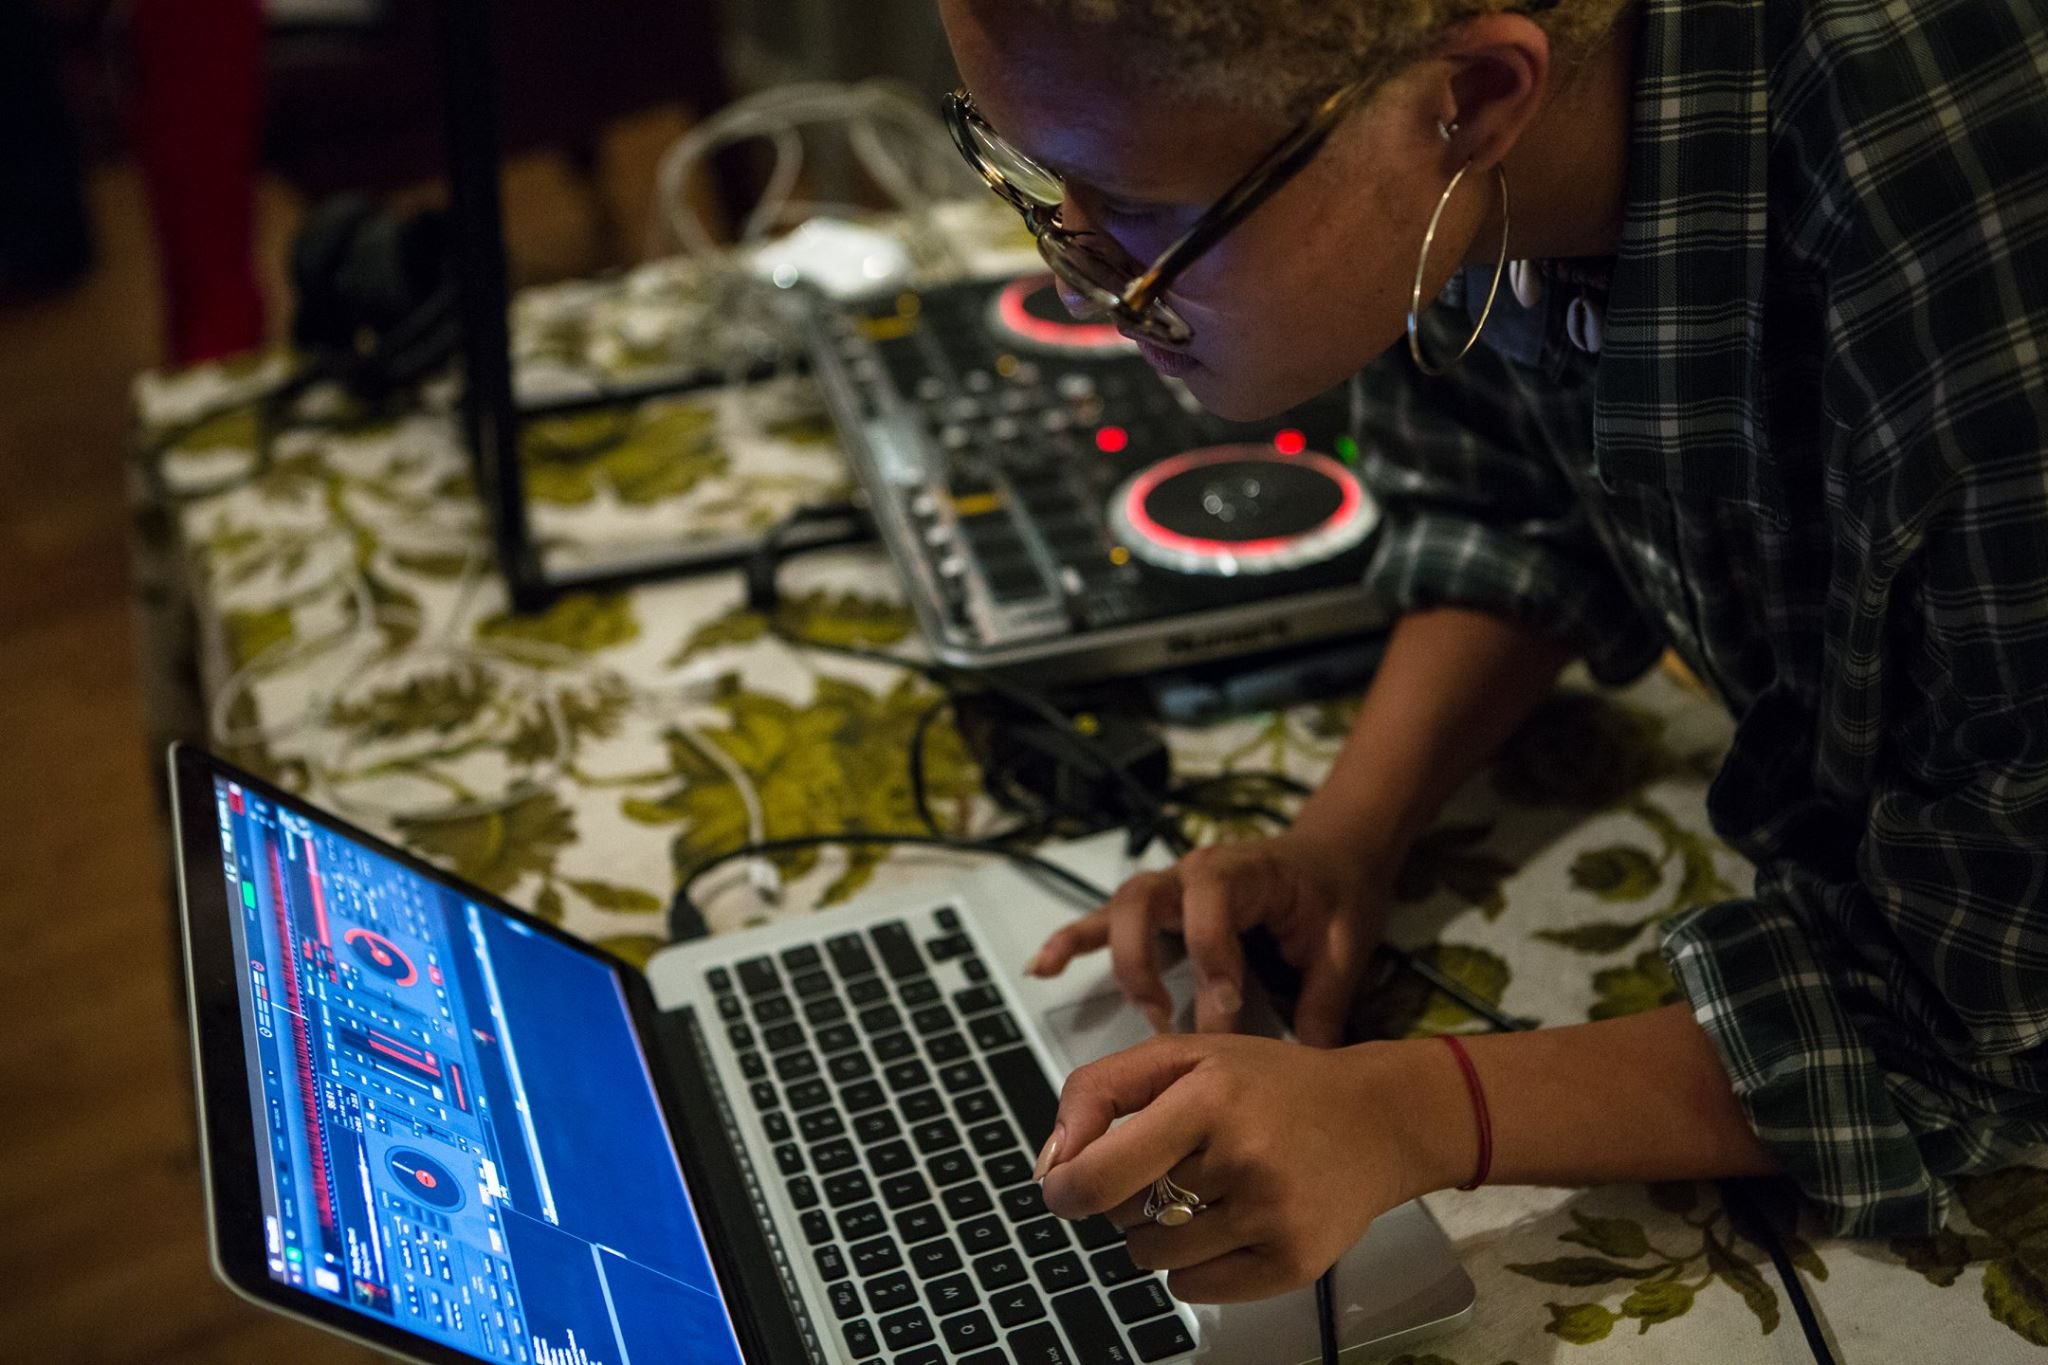 GAIA, photo by @tonyhitchcock